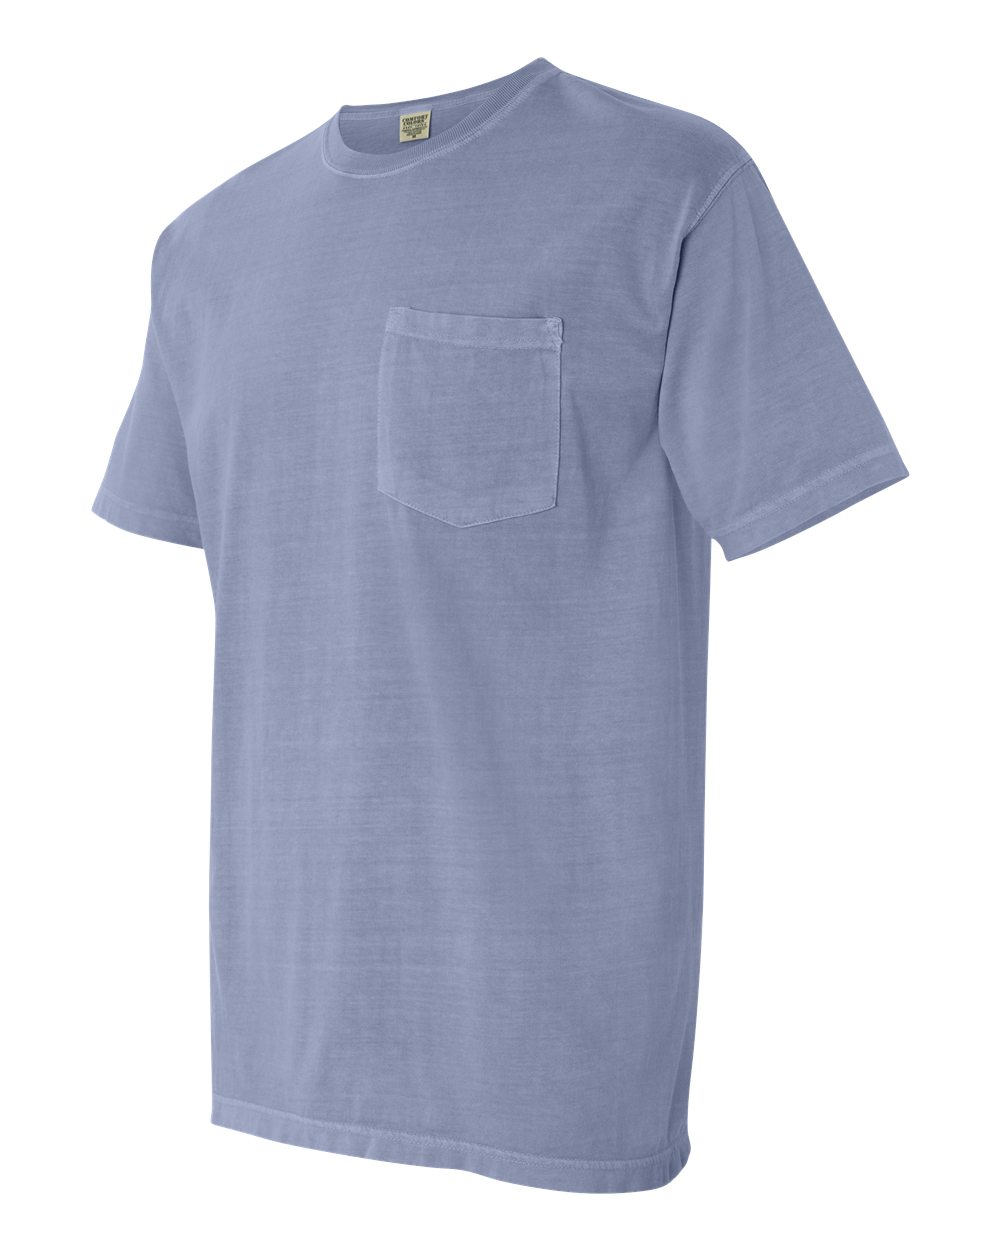 Comfort-Colors-Men-039-s-6-1-oz-Garment-Dyed-Pocket-T-Shirt-6030CC-S-3XL thumbnail 45